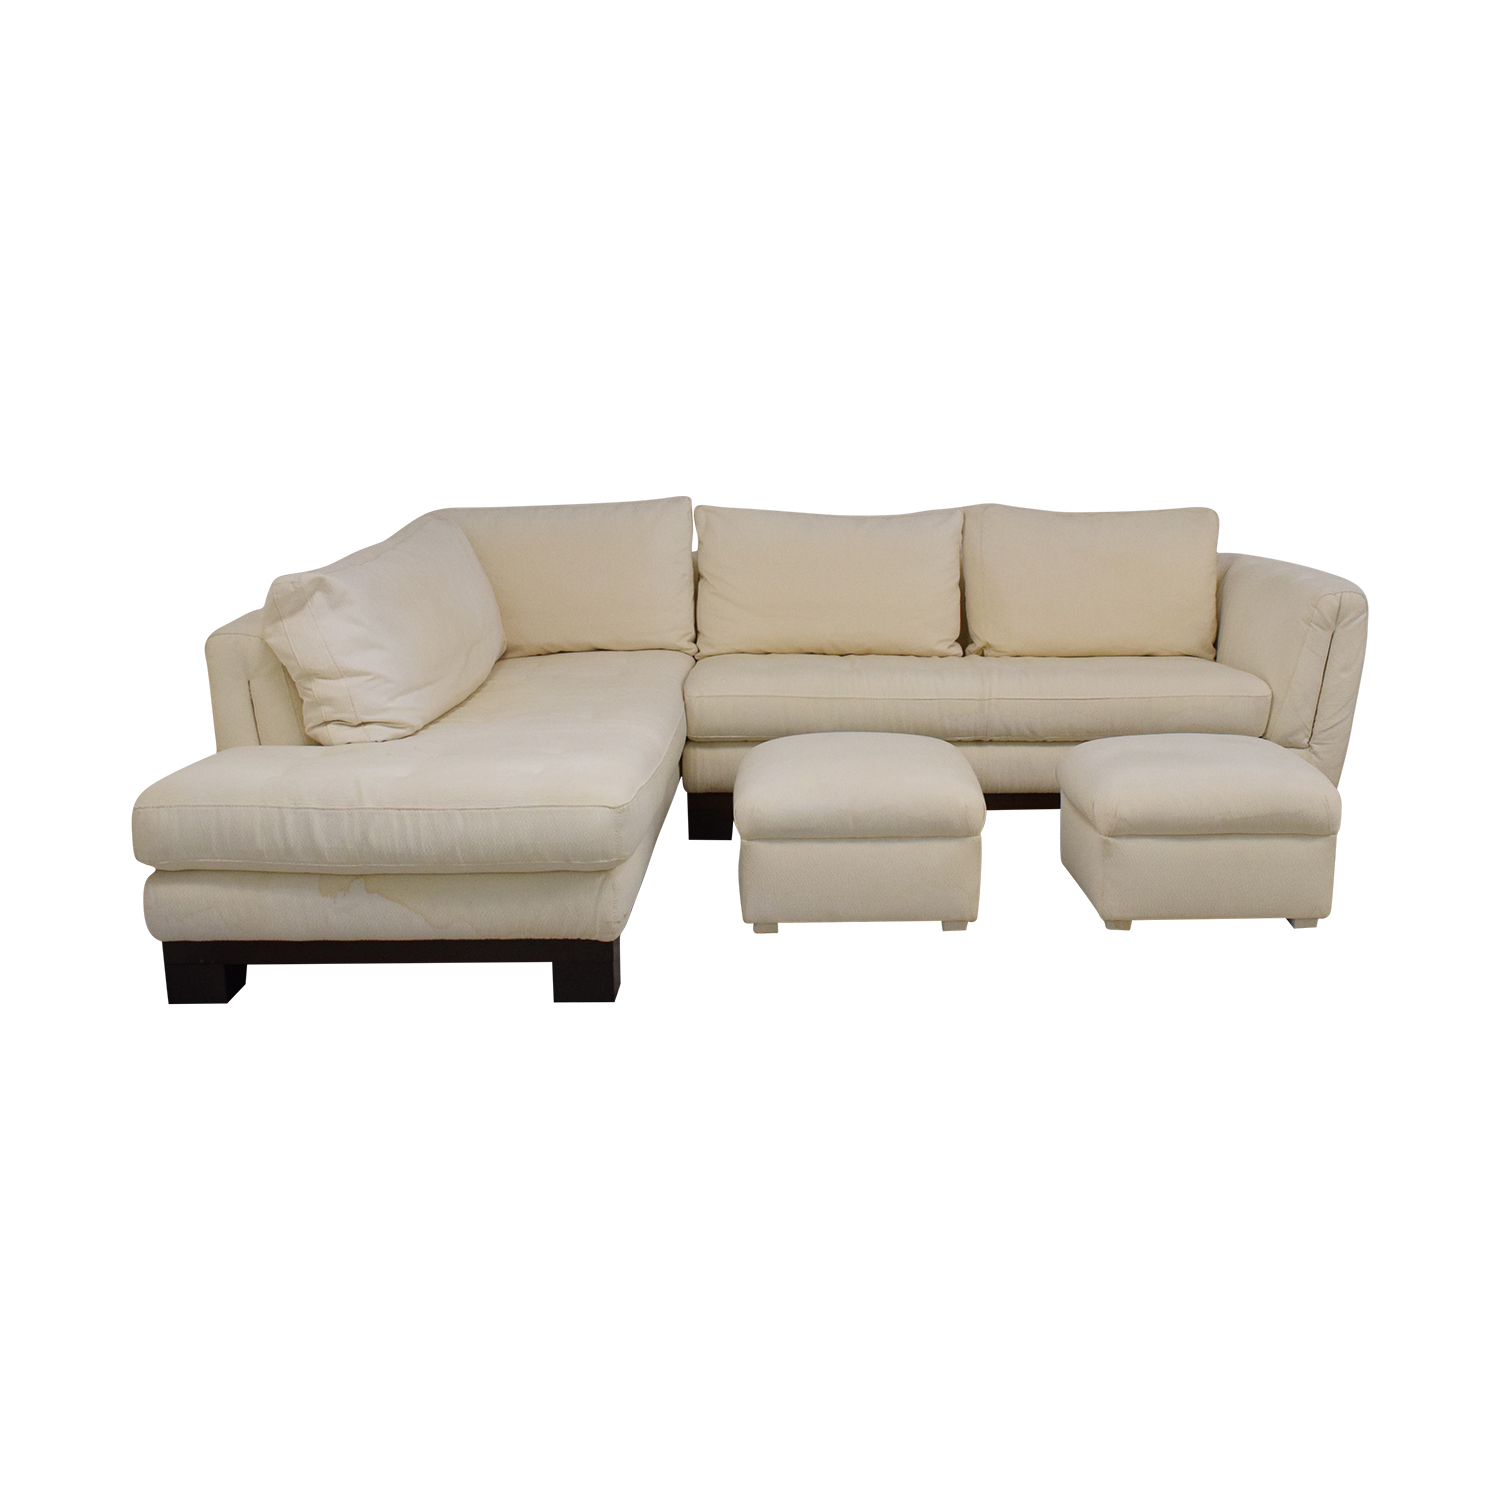 buy Maurice Villency Maurice Villency Signed Tufted Sectional Sofa with Ottomans online